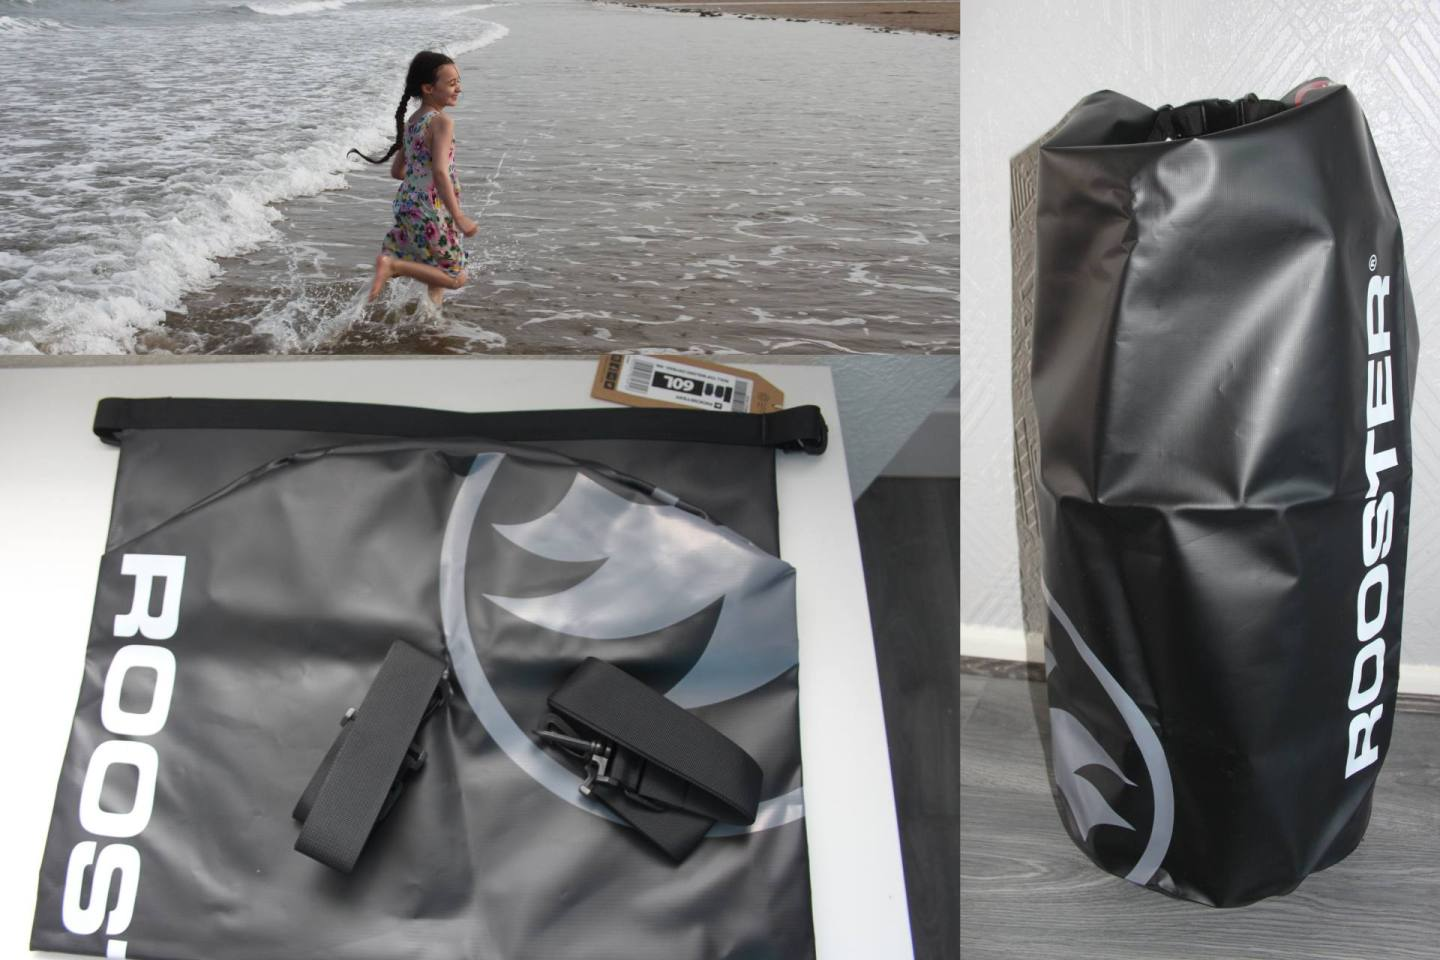 The Roll Top Welded Dry Bag from Rooster